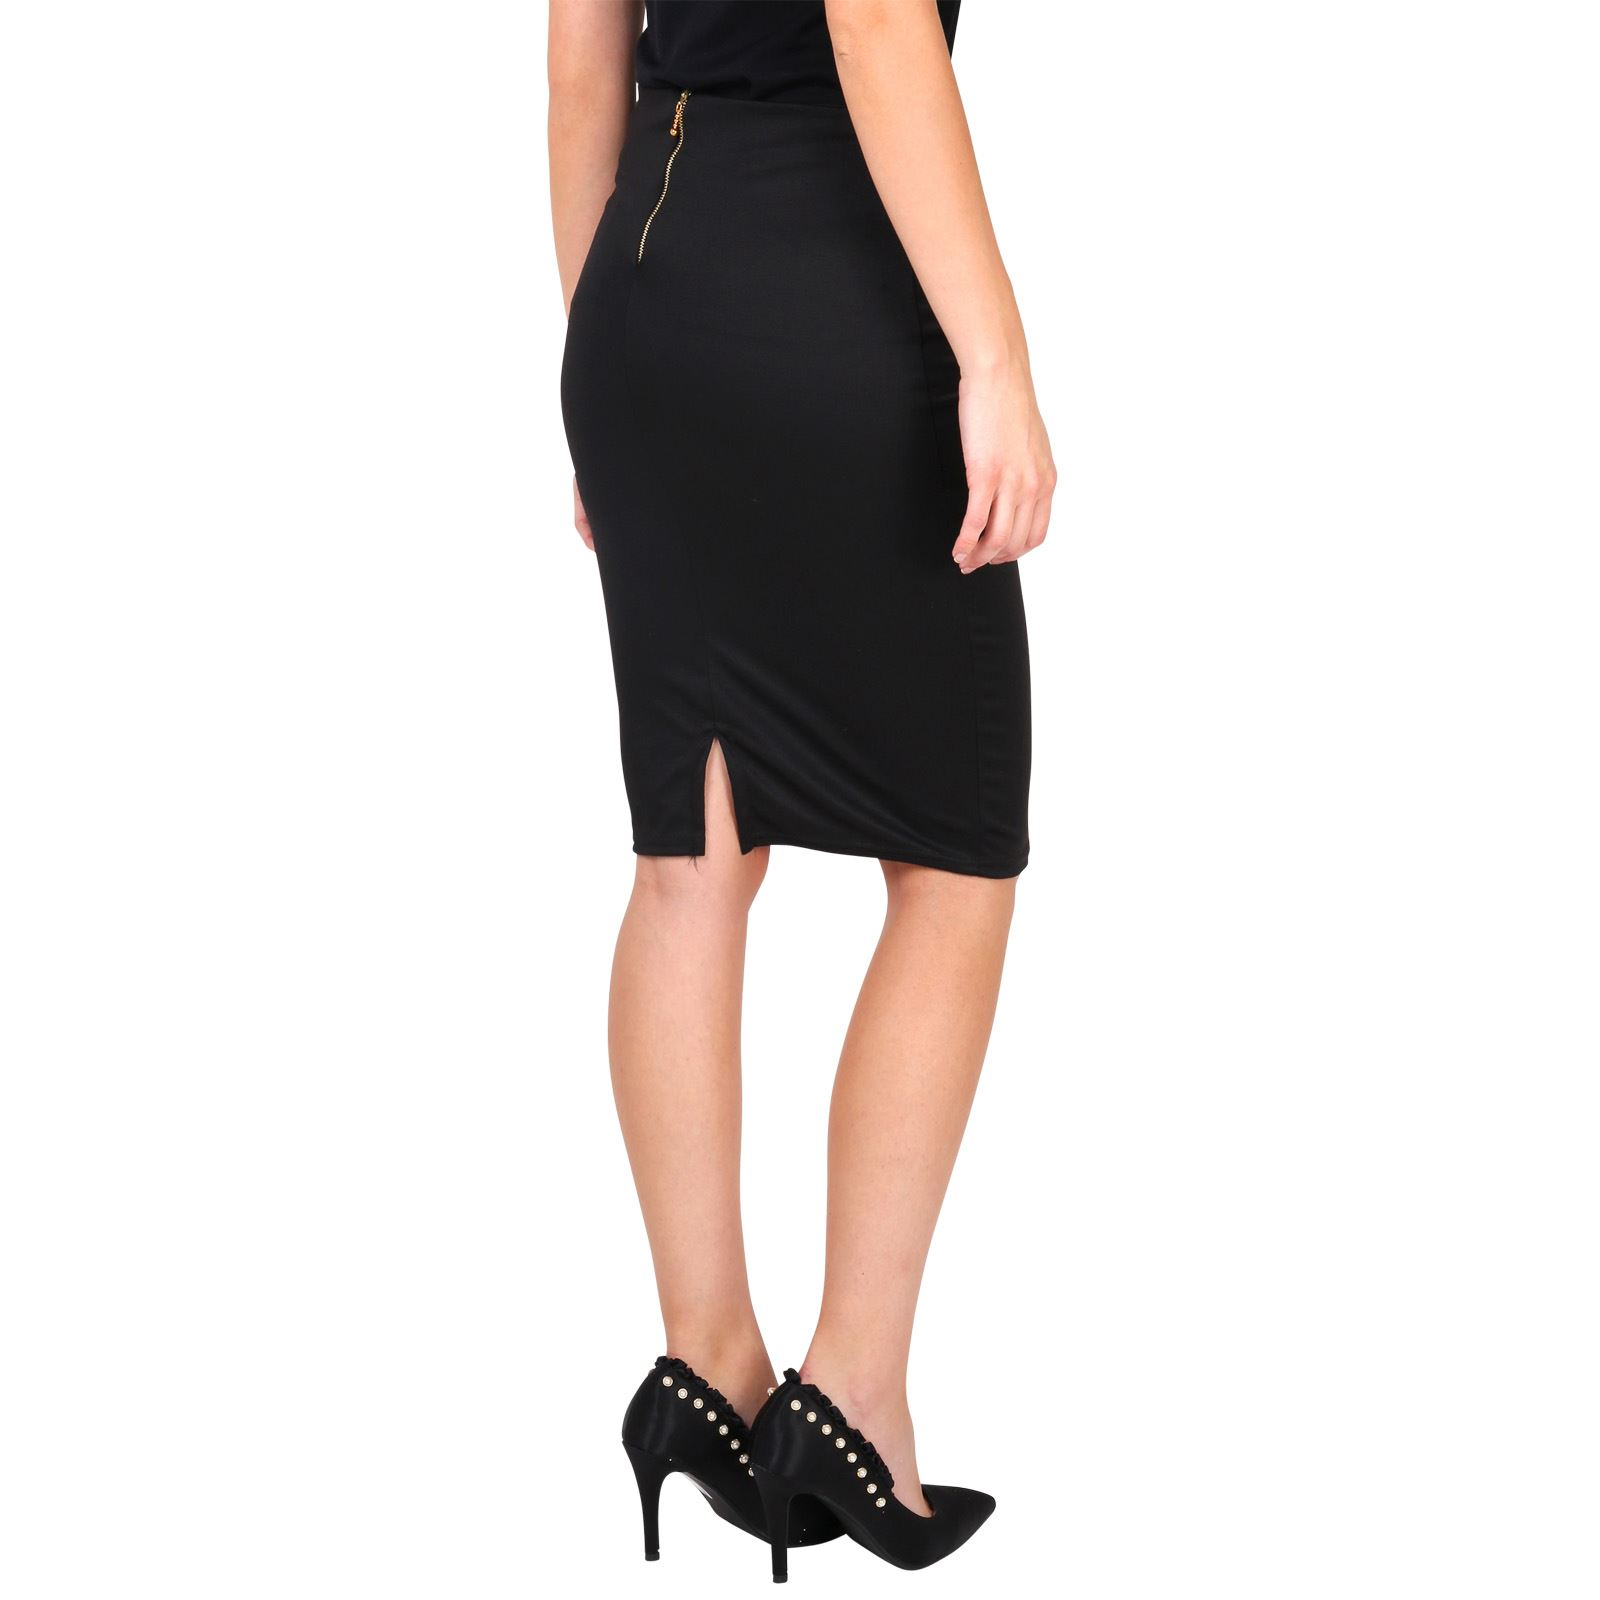 Womens-Ladies-Pencil-Midi-Skirt-Stretch-Fitted-Belt-Bodycon-Office-Work-8-20 thumbnail 3